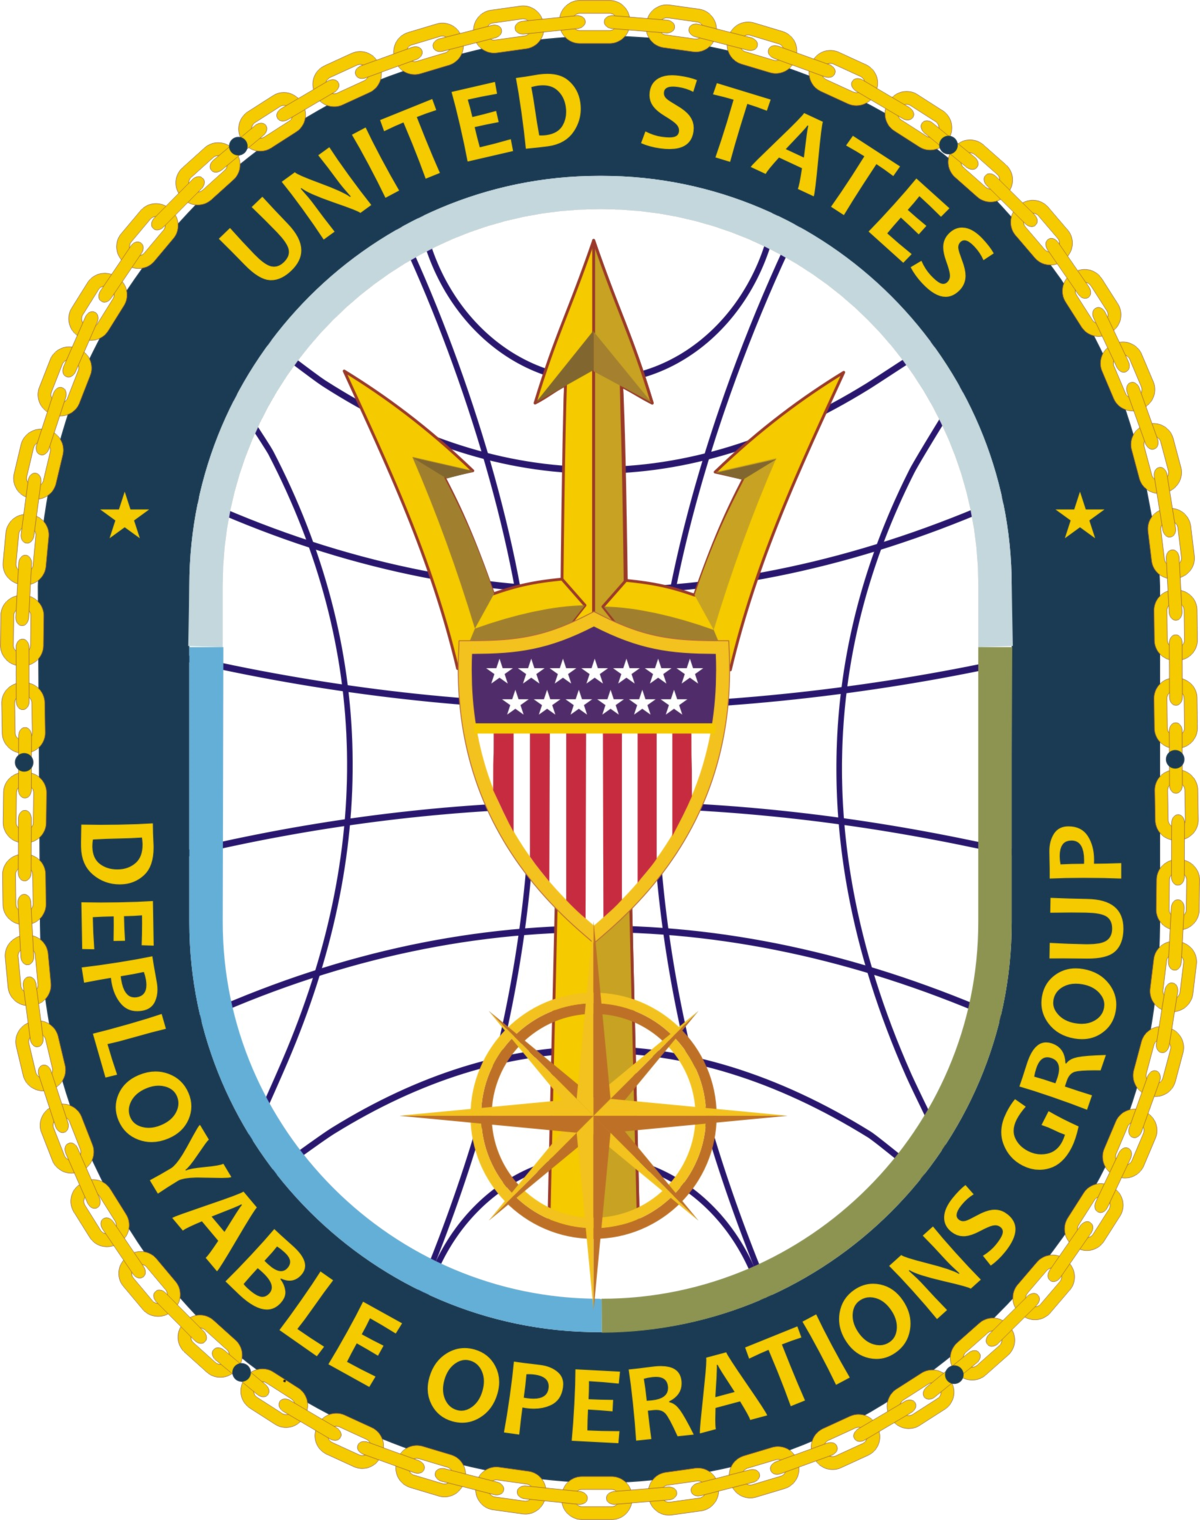 the united states coast guard essay United states coast guard mission support home cg home page overview news room reserve forcecom operations atlantic area pacific area history about us.